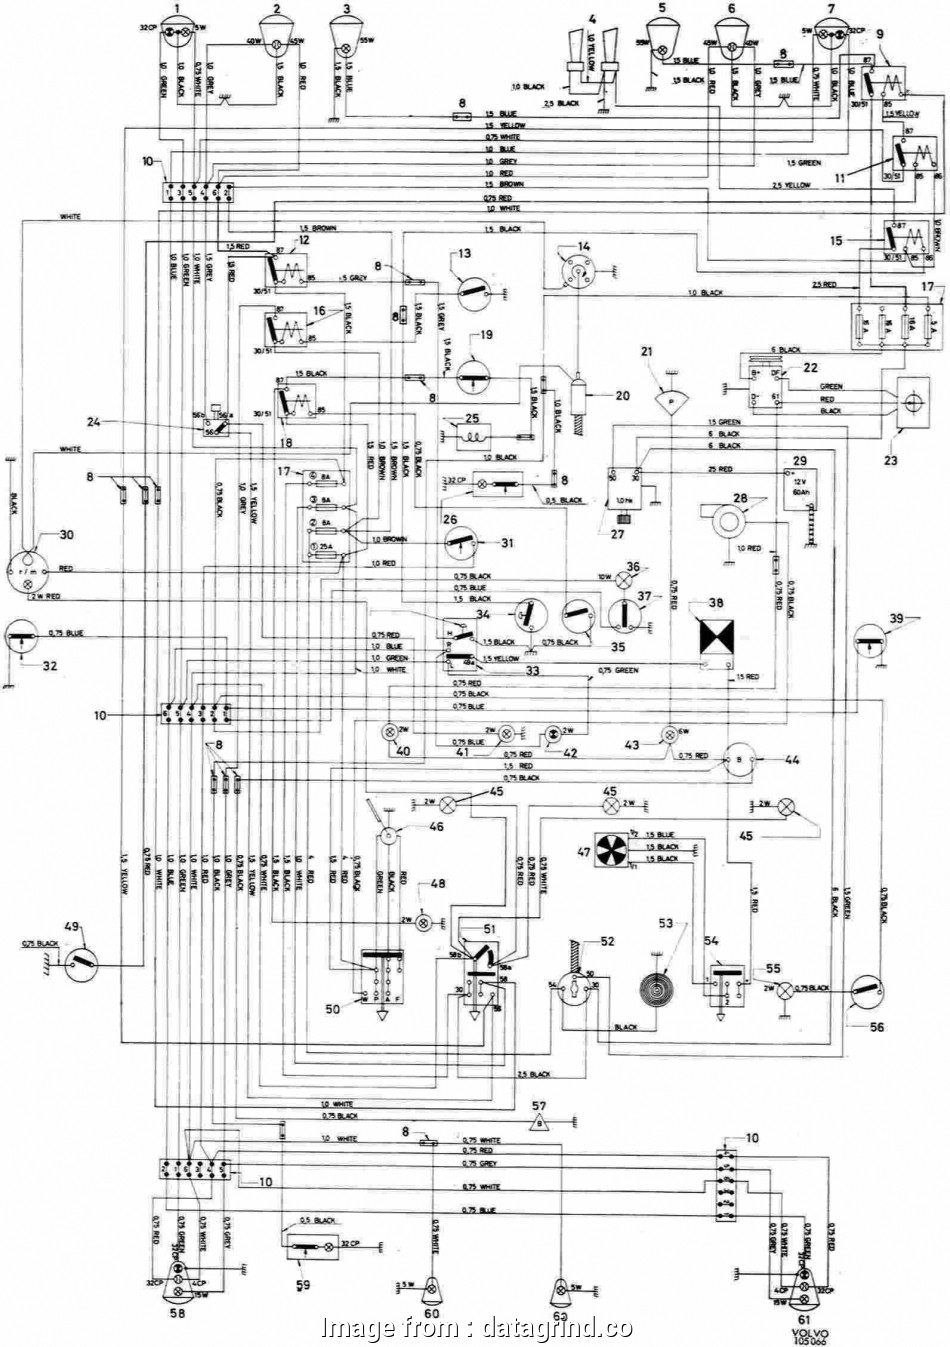 hight resolution of volvo truck starter wiring diagram volvo wiring diagram starter wiring diagram u2022 rh growbyte co